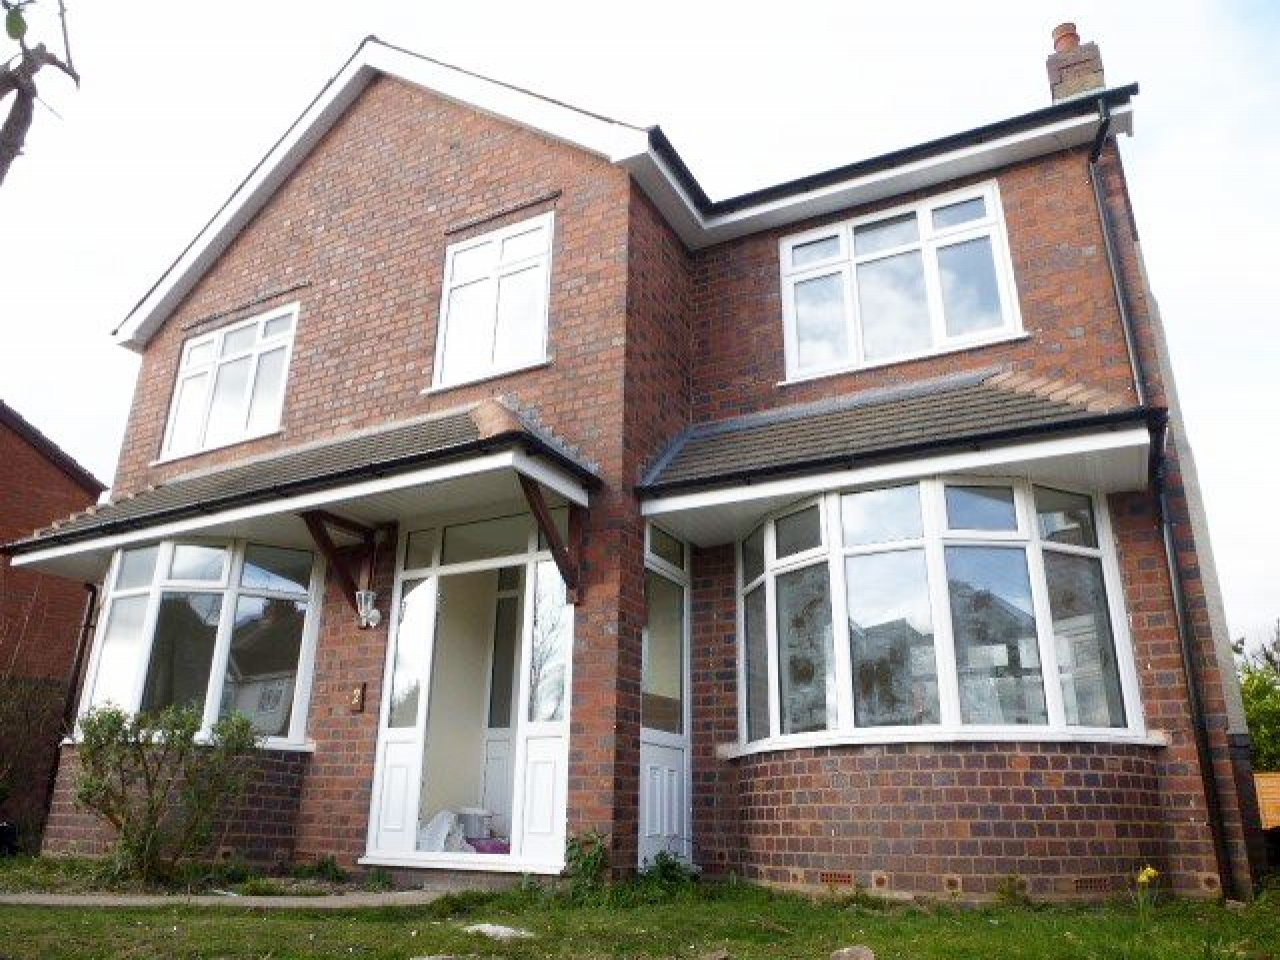 3 Bed Detached House To Rent - Photograph 1